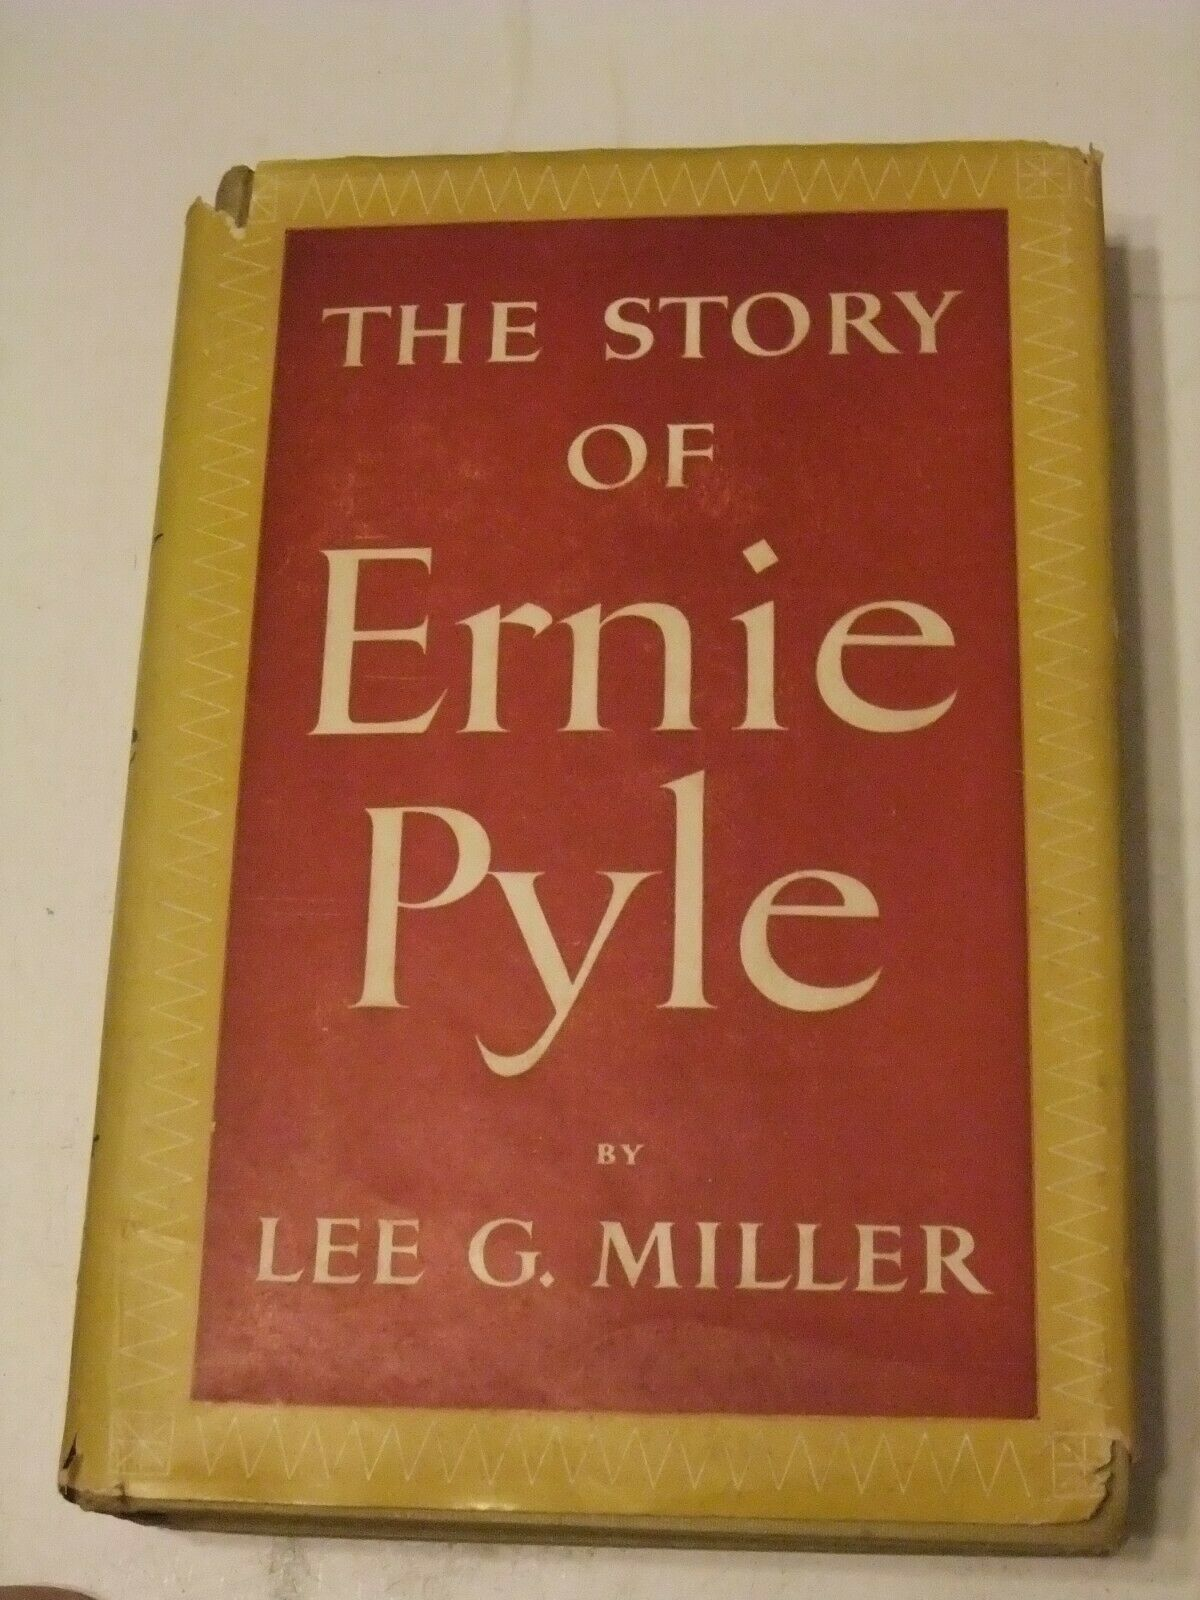 Primary image for The Story of Ernie Pyle, Lee Miller, Viking, 1950, World War II, Hardcover